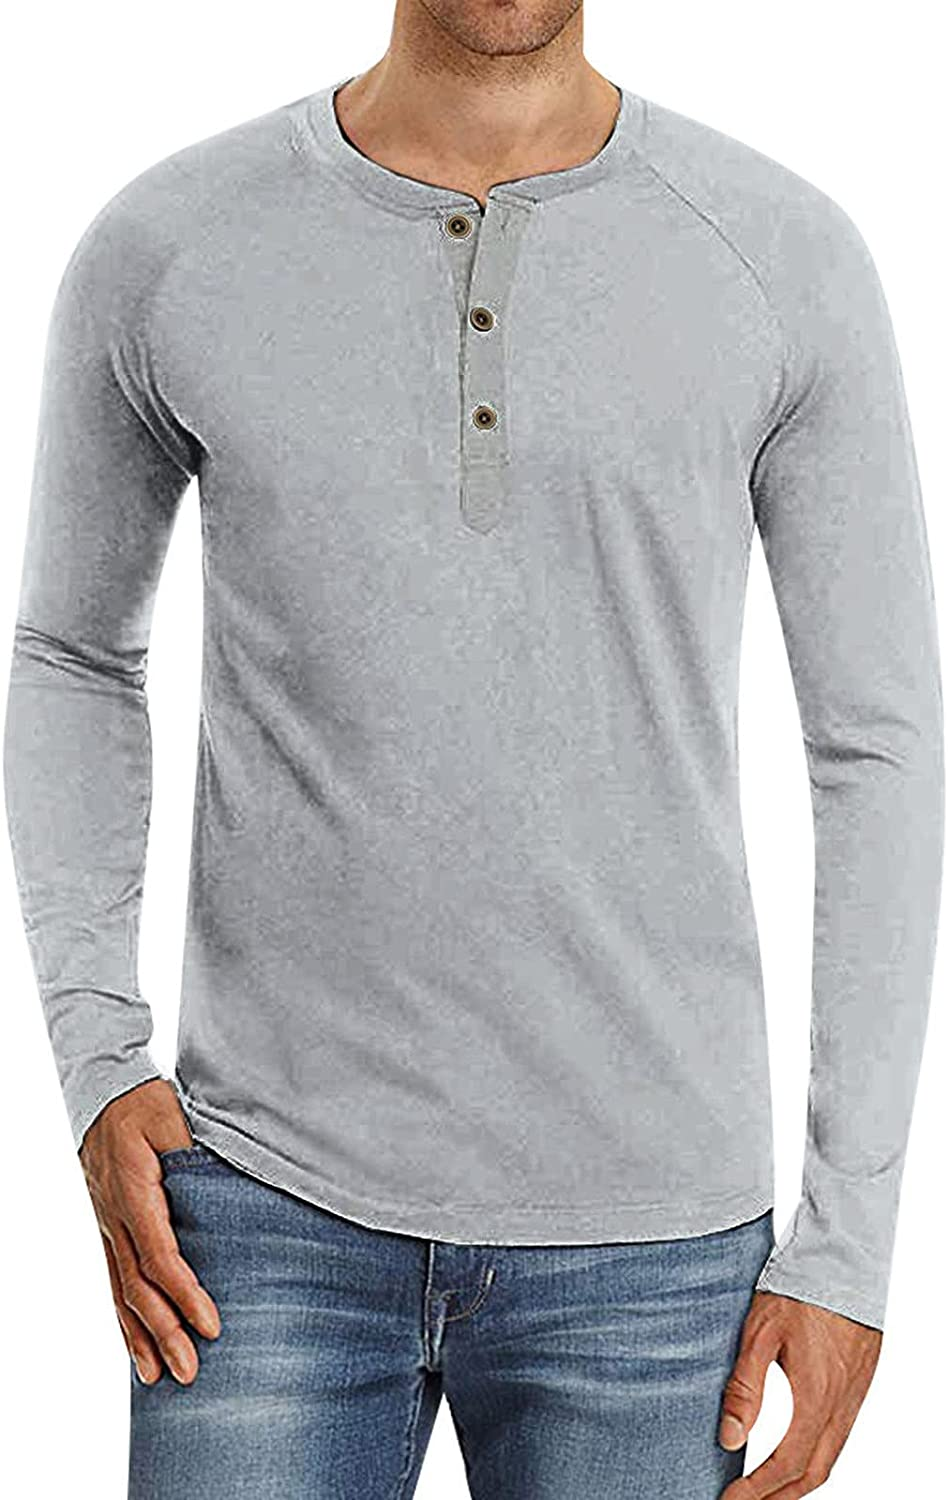 xoxing Long Sleeve Tee Shirts for Men Casual Autumn Plus Size Loose Basic Solid Color Button Henley Jacket Top Blouse